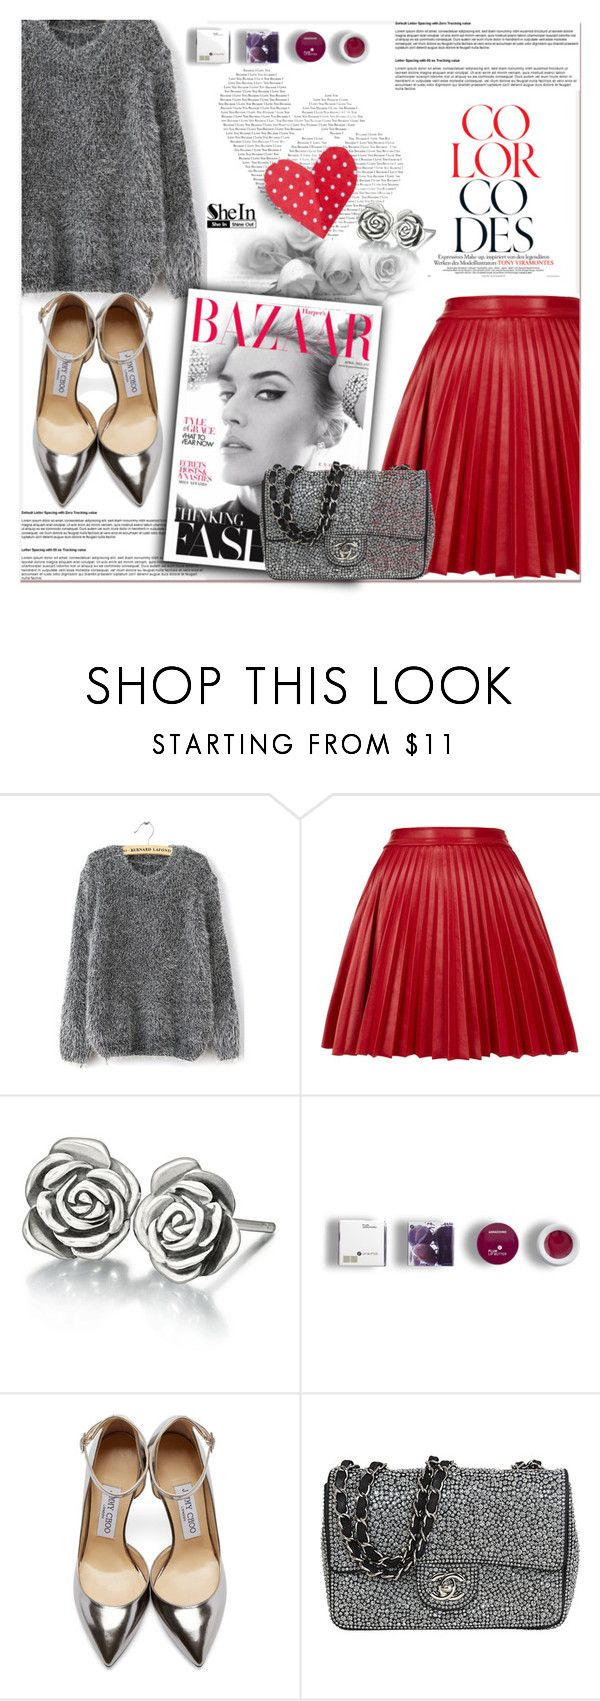 """#sheinside"" by sweta-gupta ❤ liked on Polyvore featuring Topshop, Chamilia, Korres, Jimmy Choo and Chanel"